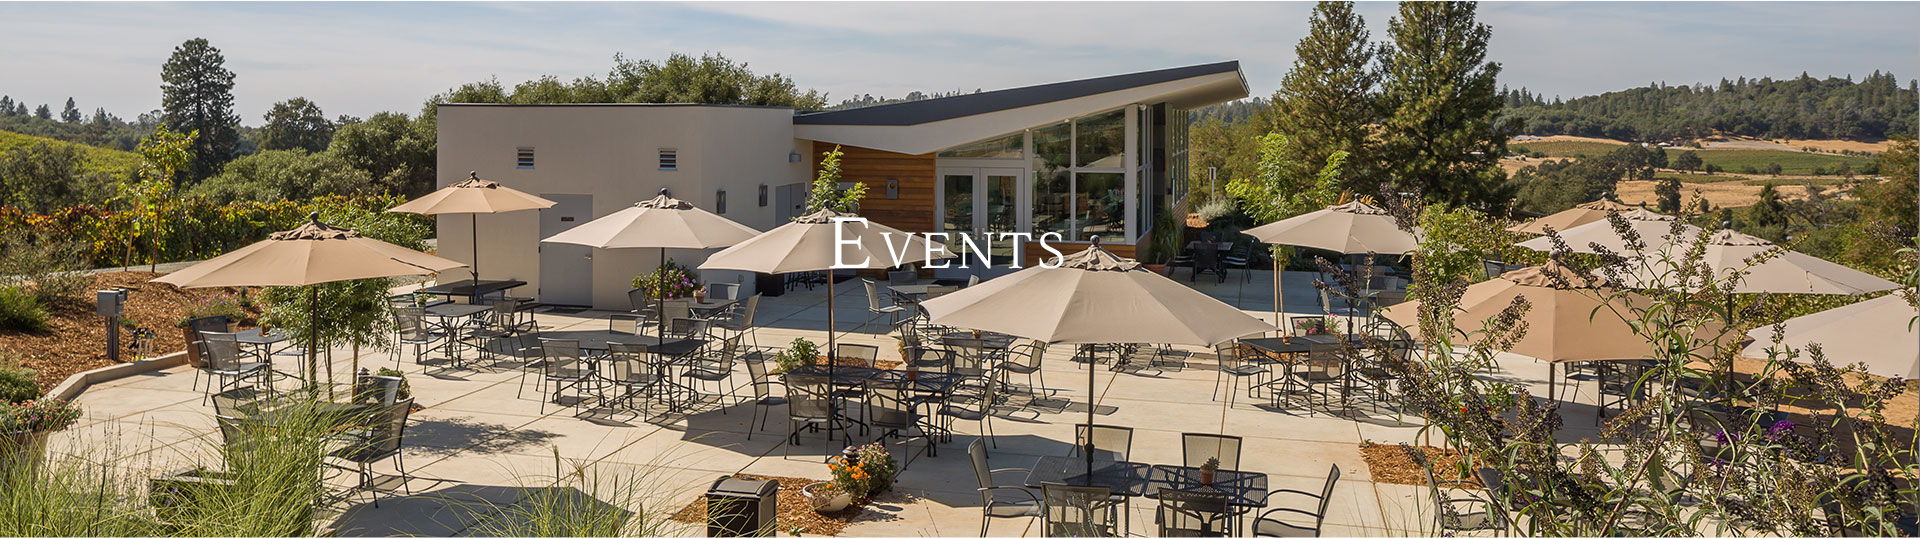 Iron Hub Winery Events